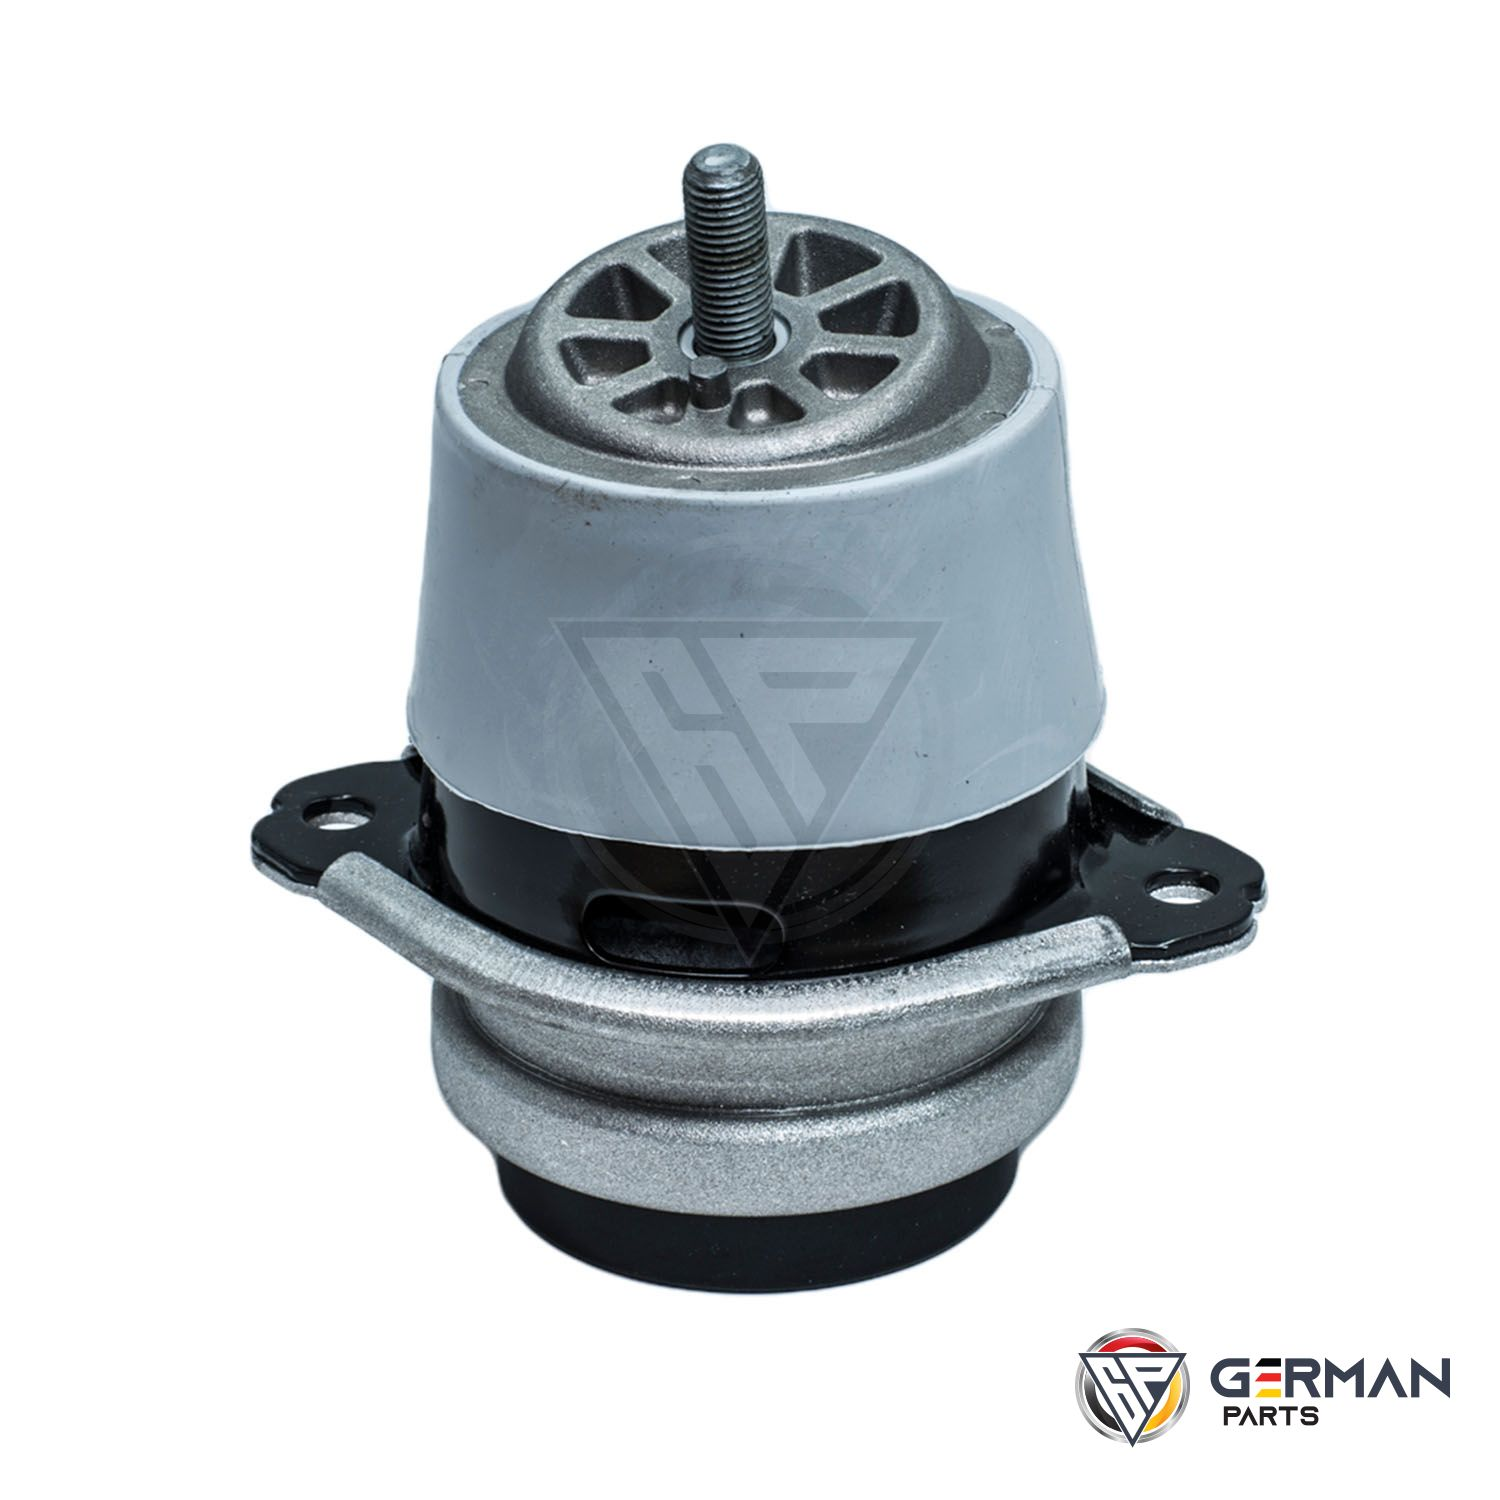 Buy Audi Volkswagen Engine Mounting 7L6199131A - German Parts